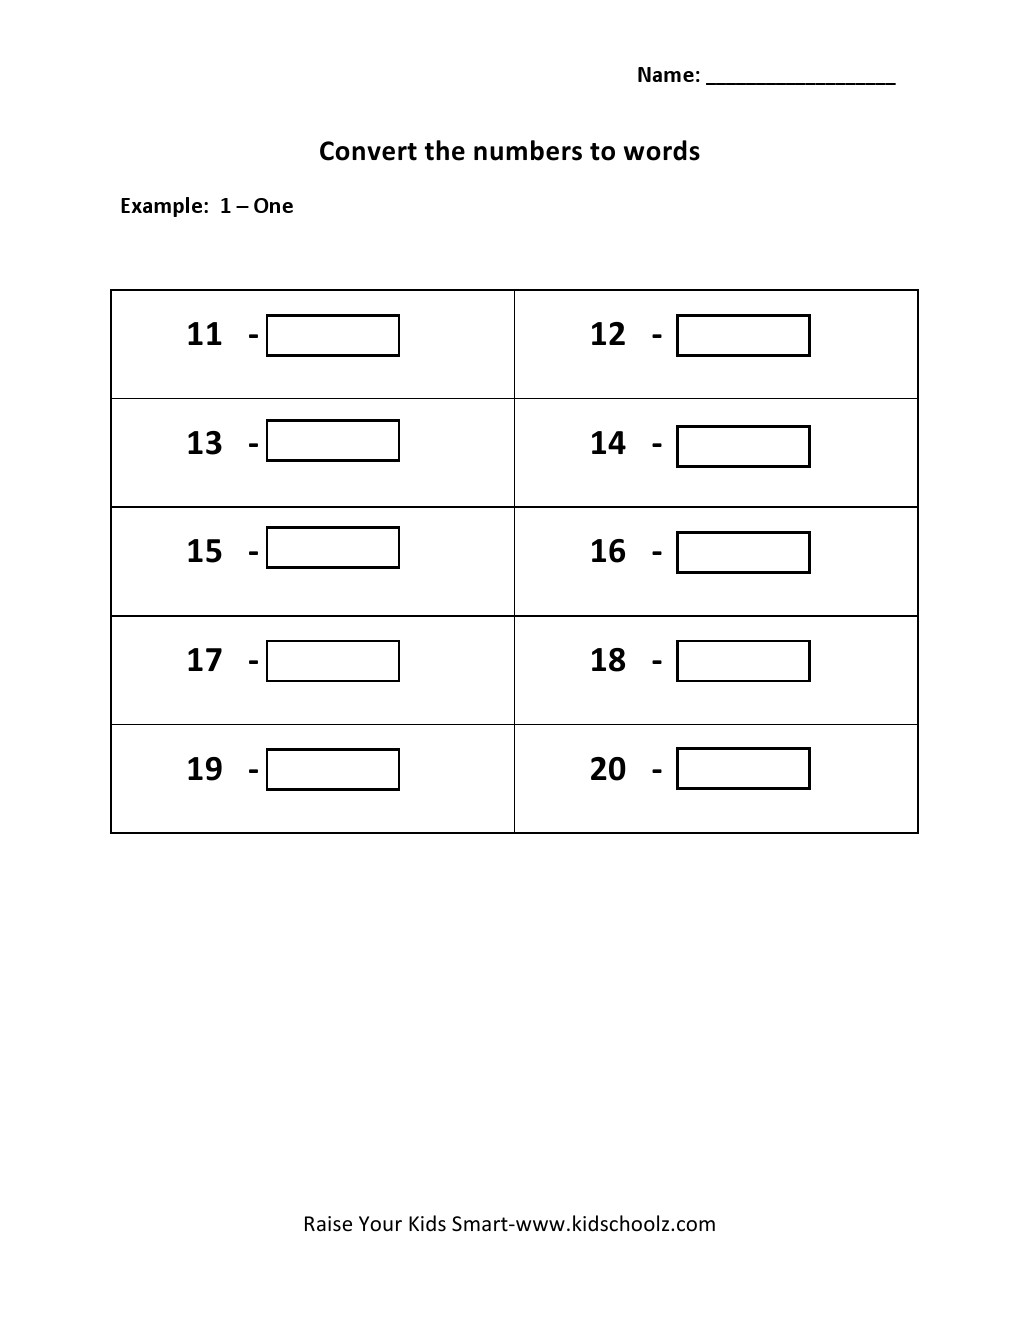 grade 1 convert numbers to words worksheet 11 20 kidschoolz